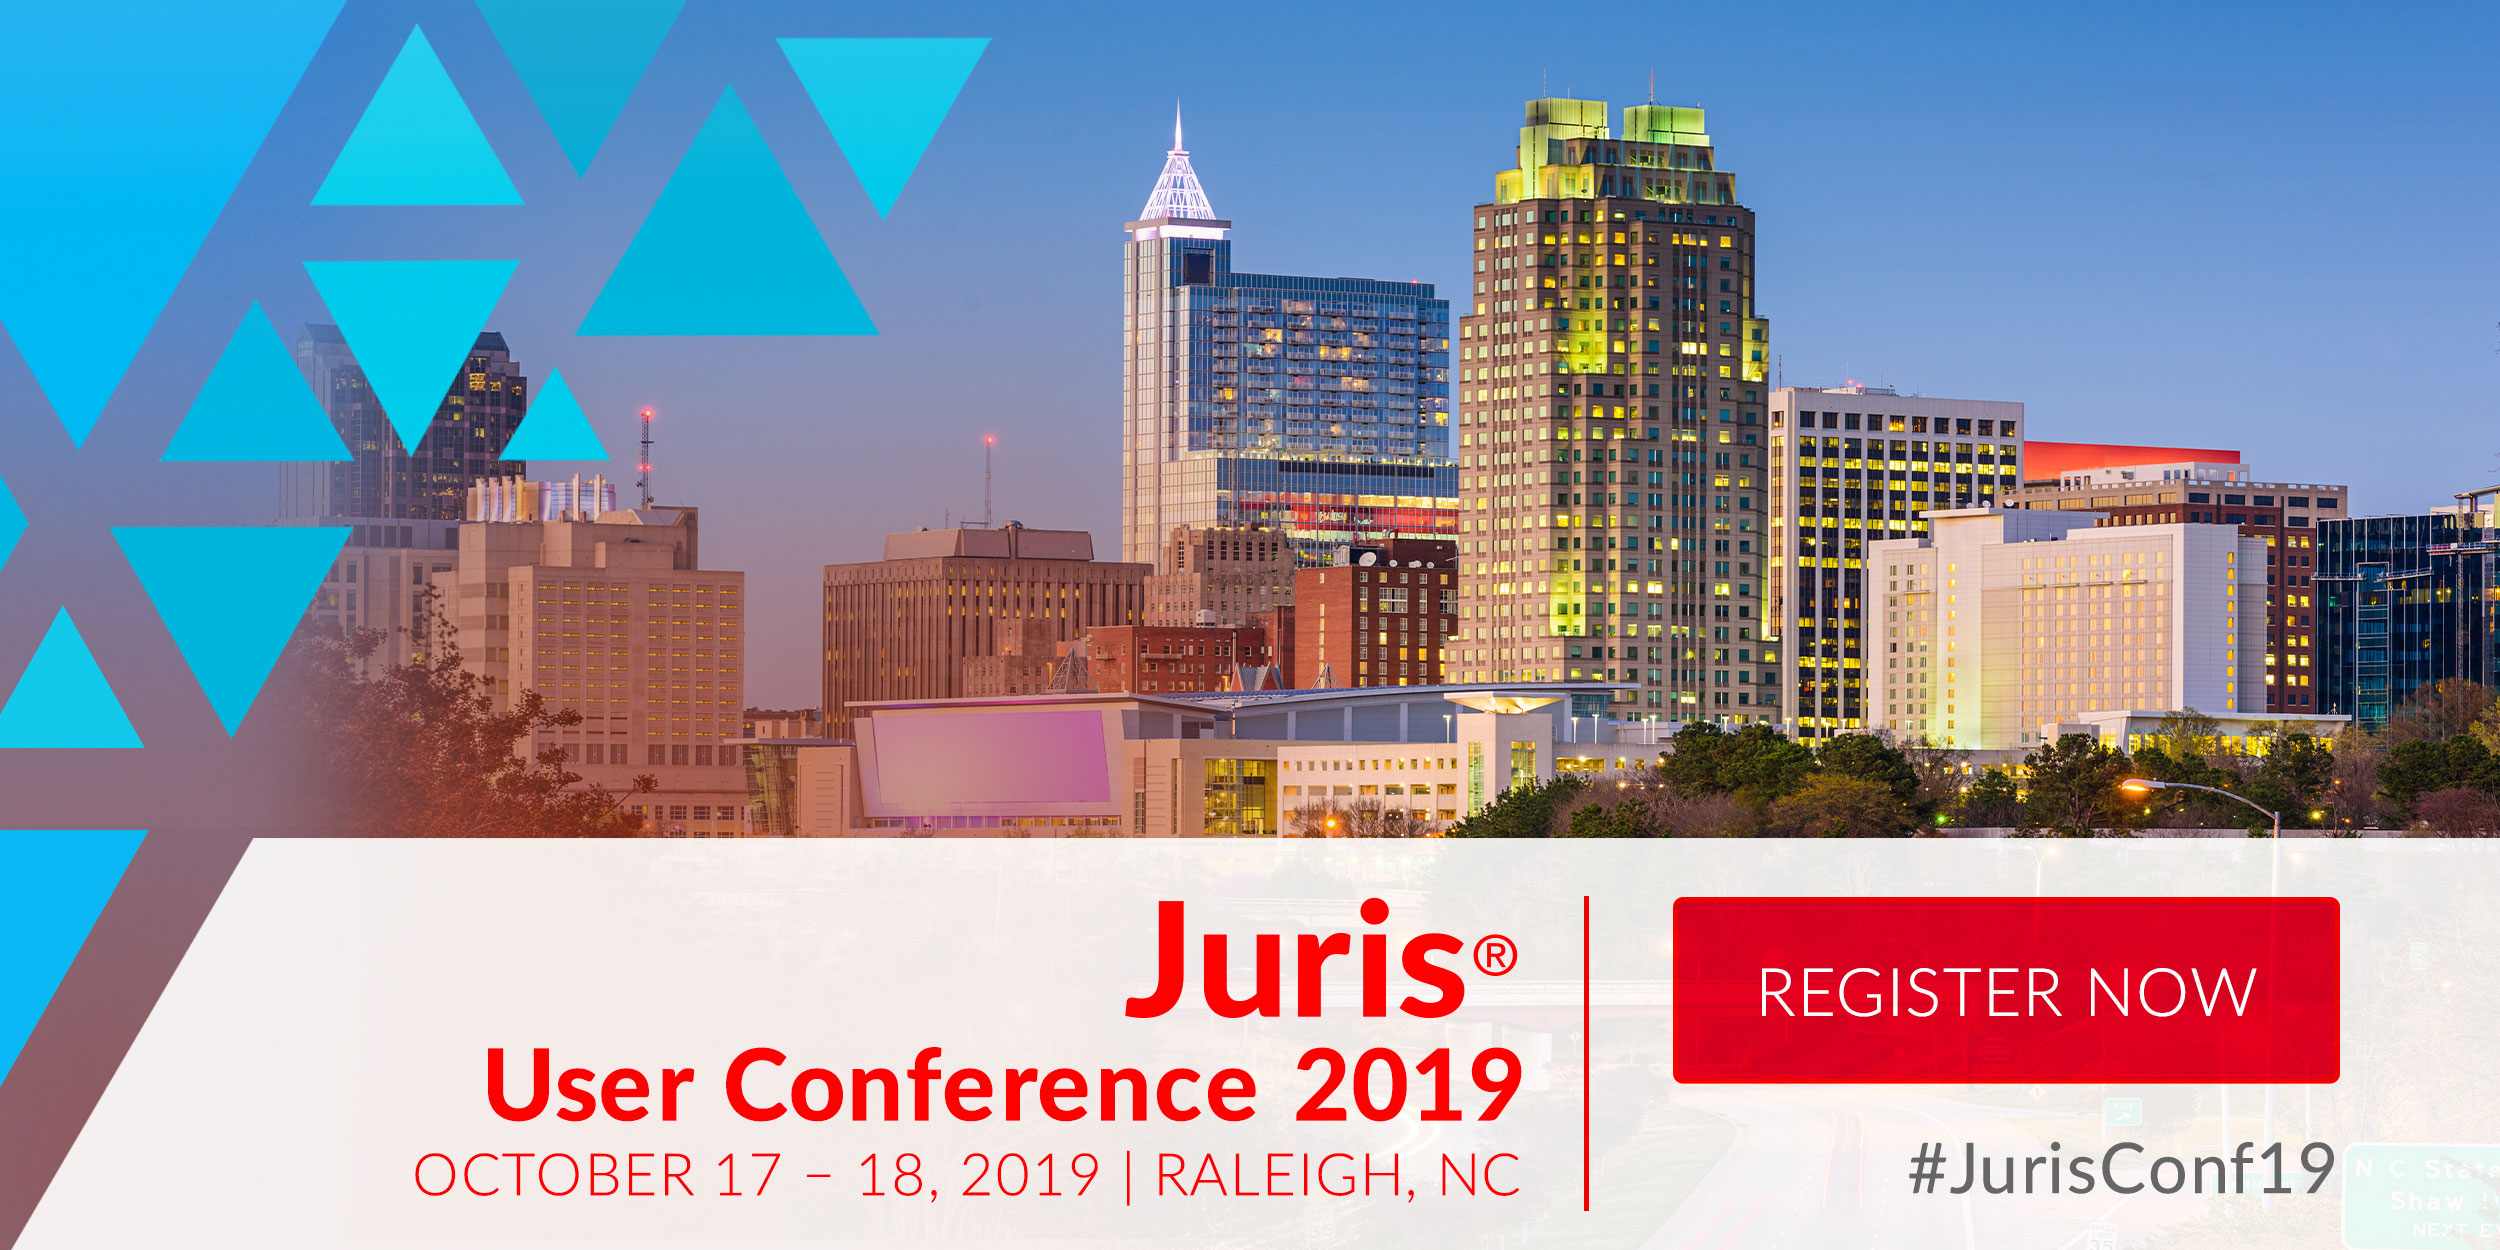 001452_Juris_User_Conference_2019_Website_2500x1250